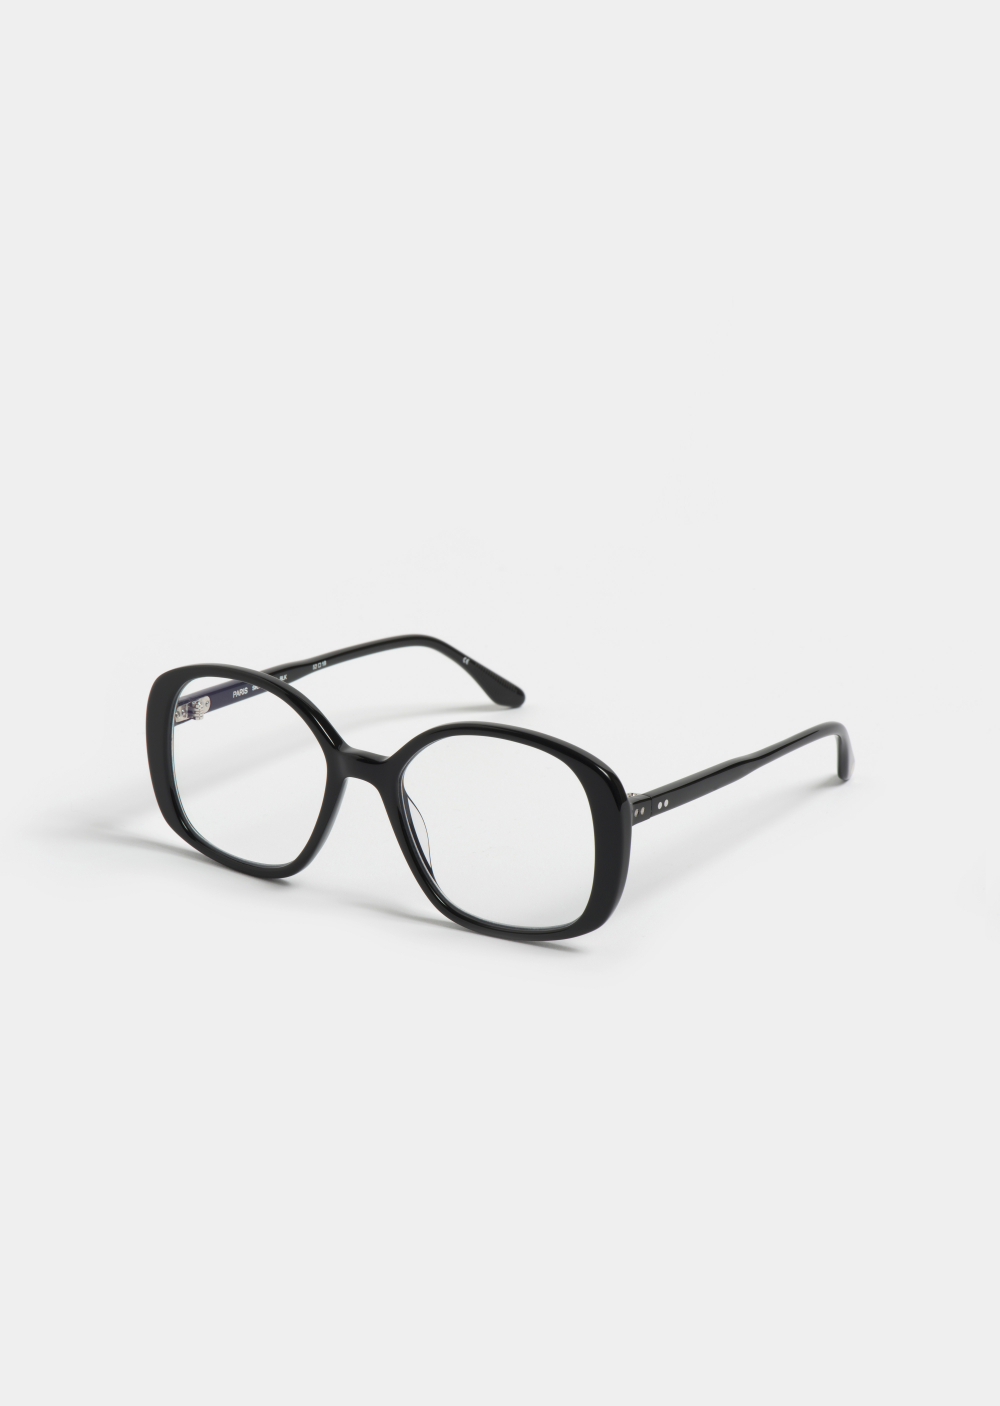 PETER AND MAY -  - LT9 Perle Black